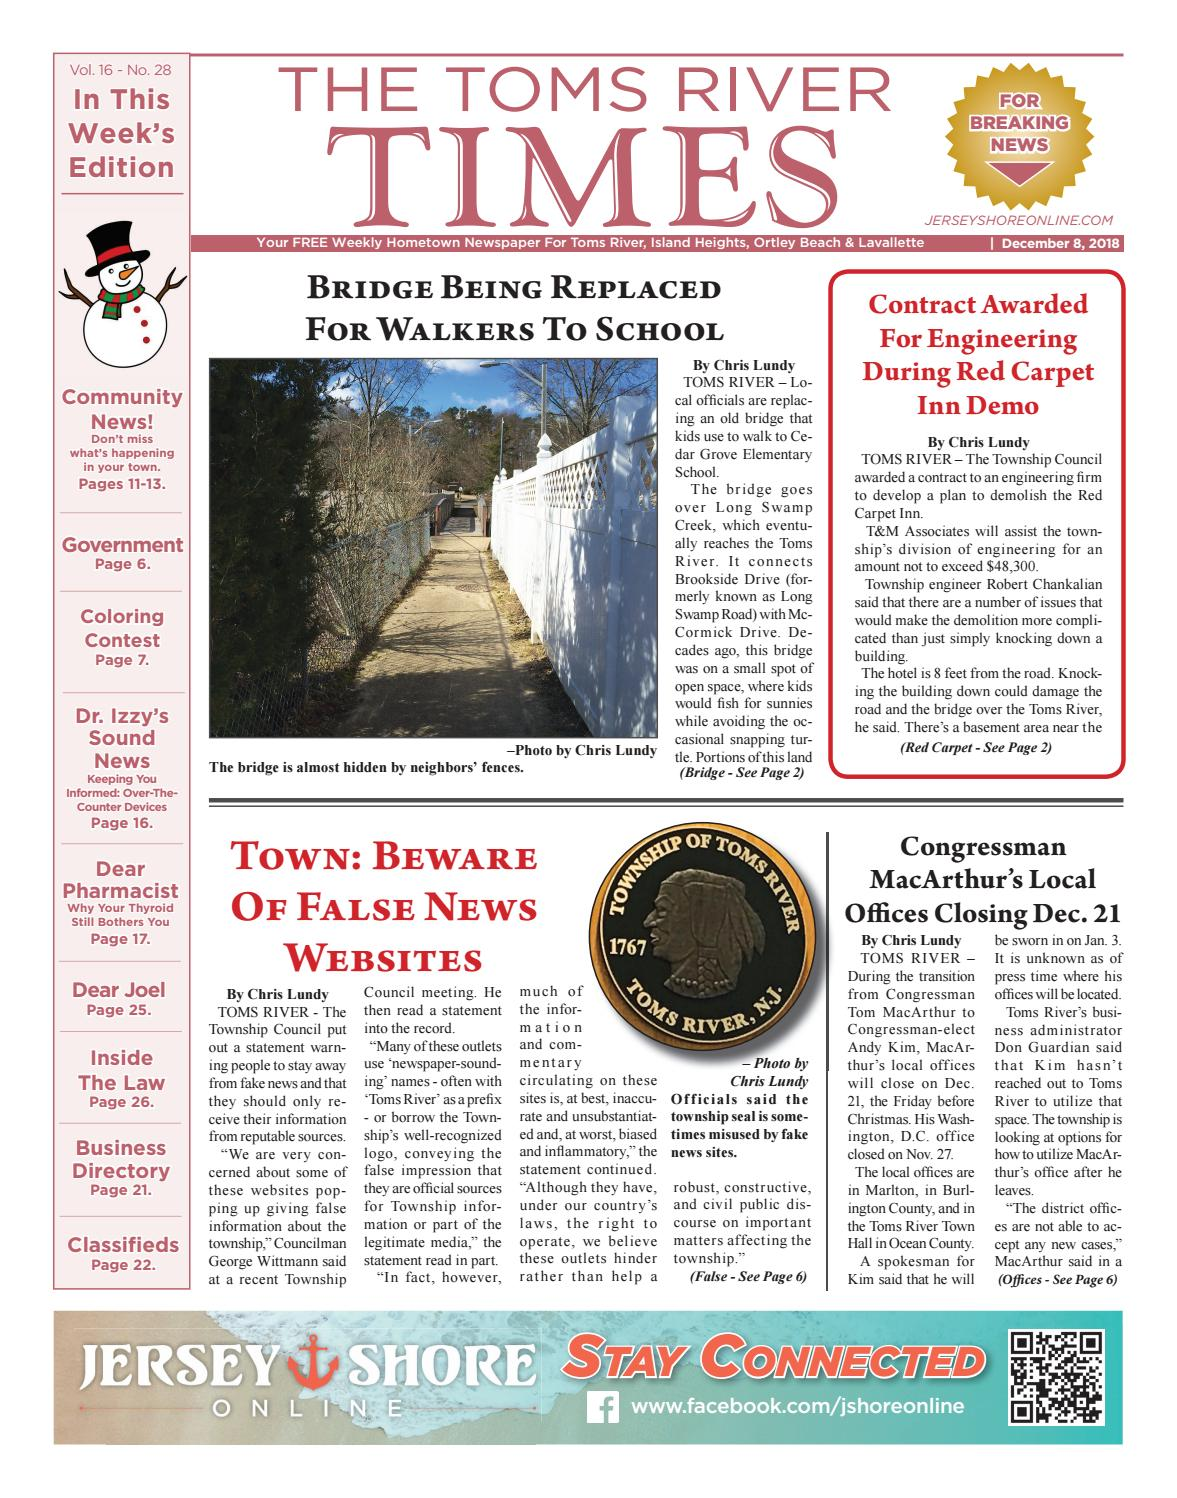 2018-12-08 - The Toms River Times by Micromedia Publications